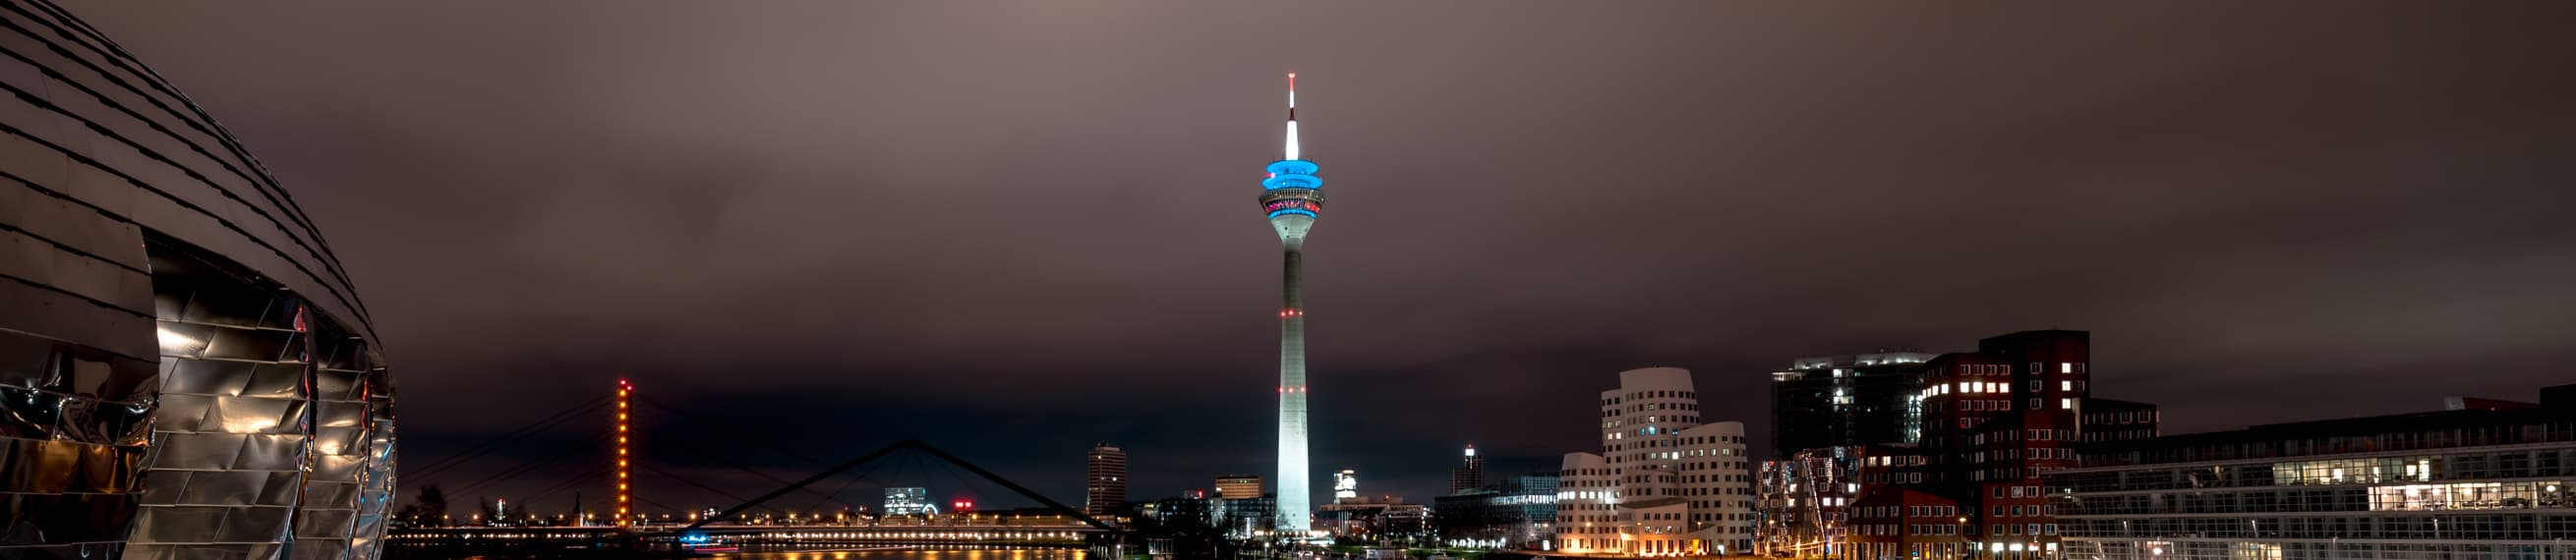 Skyline of Dusseldorf